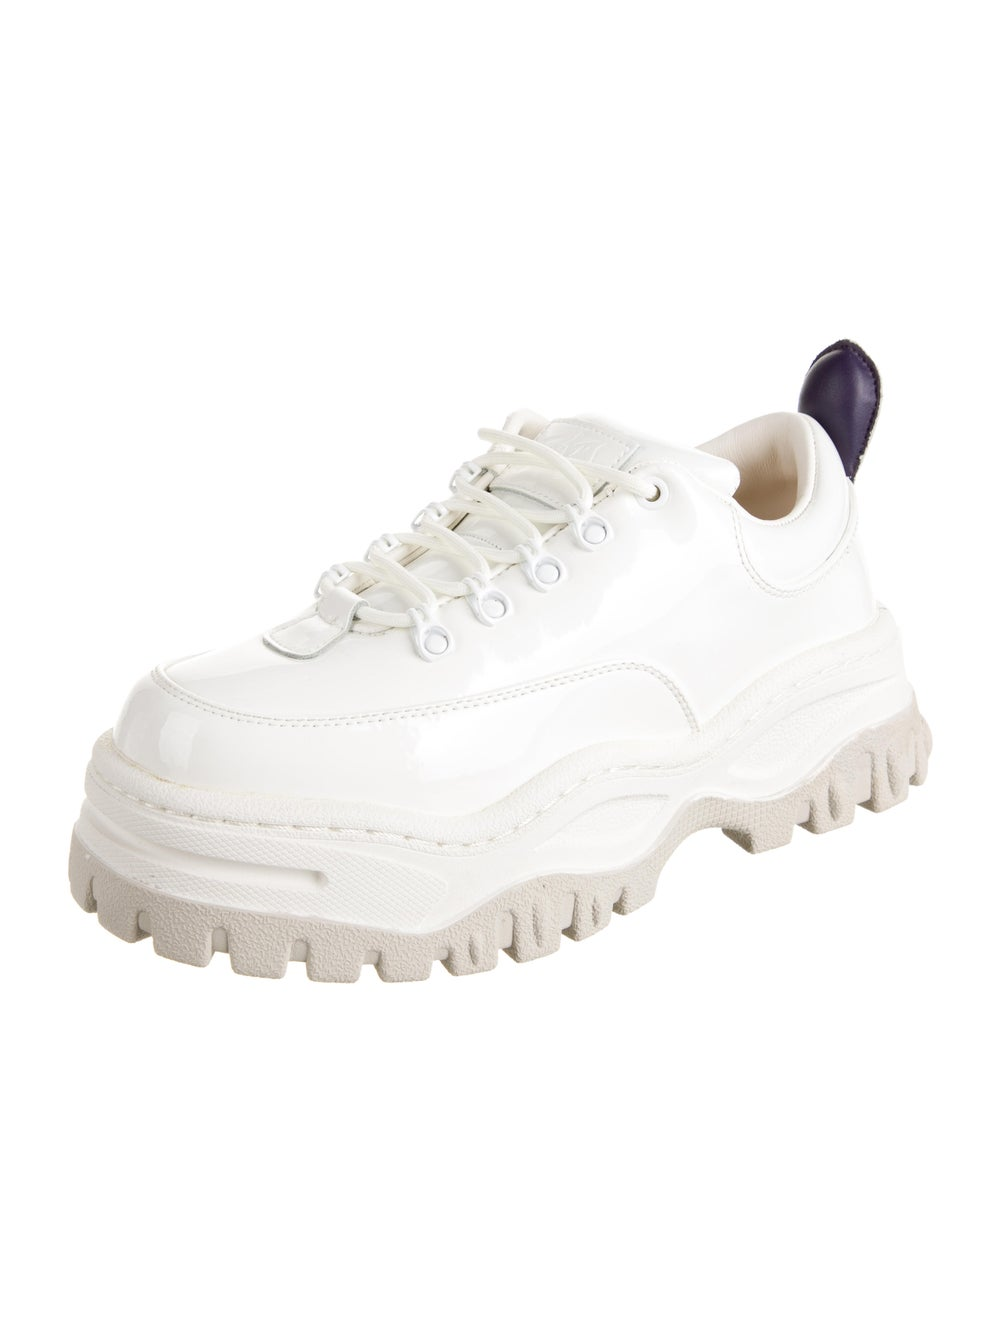 Eytys Leather Chunky Sneakers White - image 2